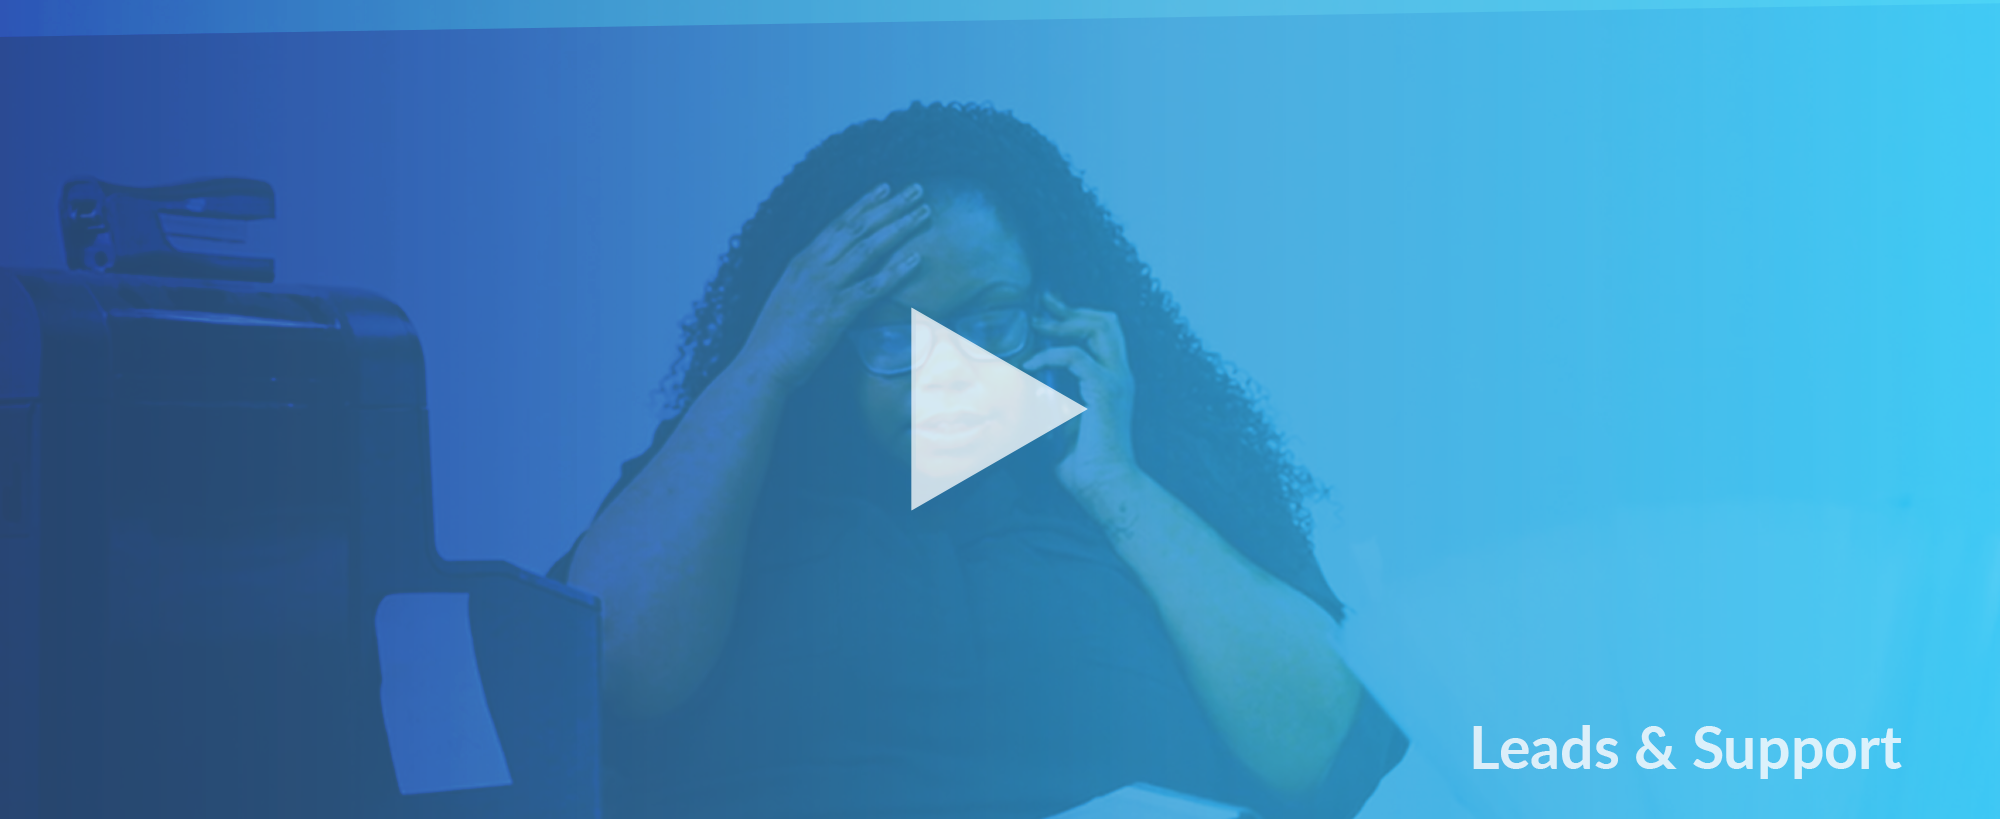 Image of businesswoman with hand on head with a play button overlay, indicating a video.